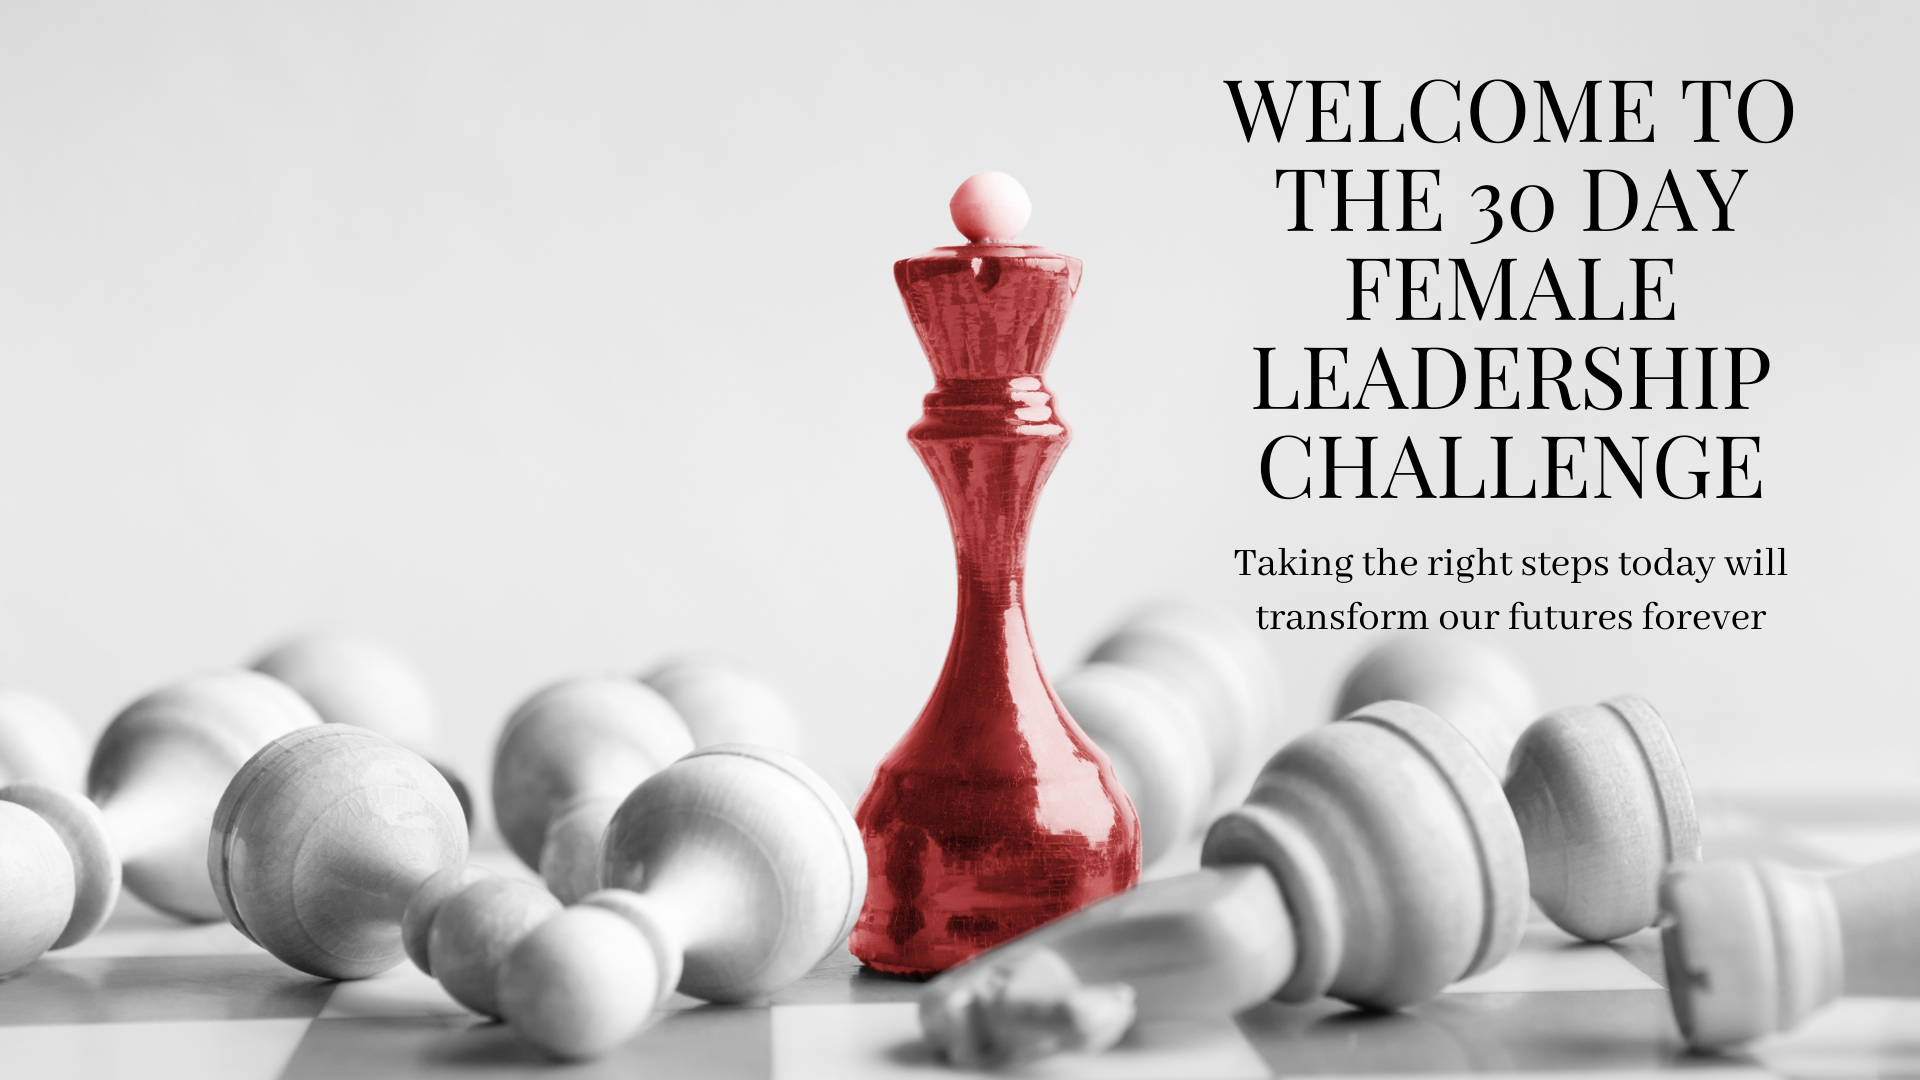 Day 1 Welcome to the 30 day Female Leadership Challenge